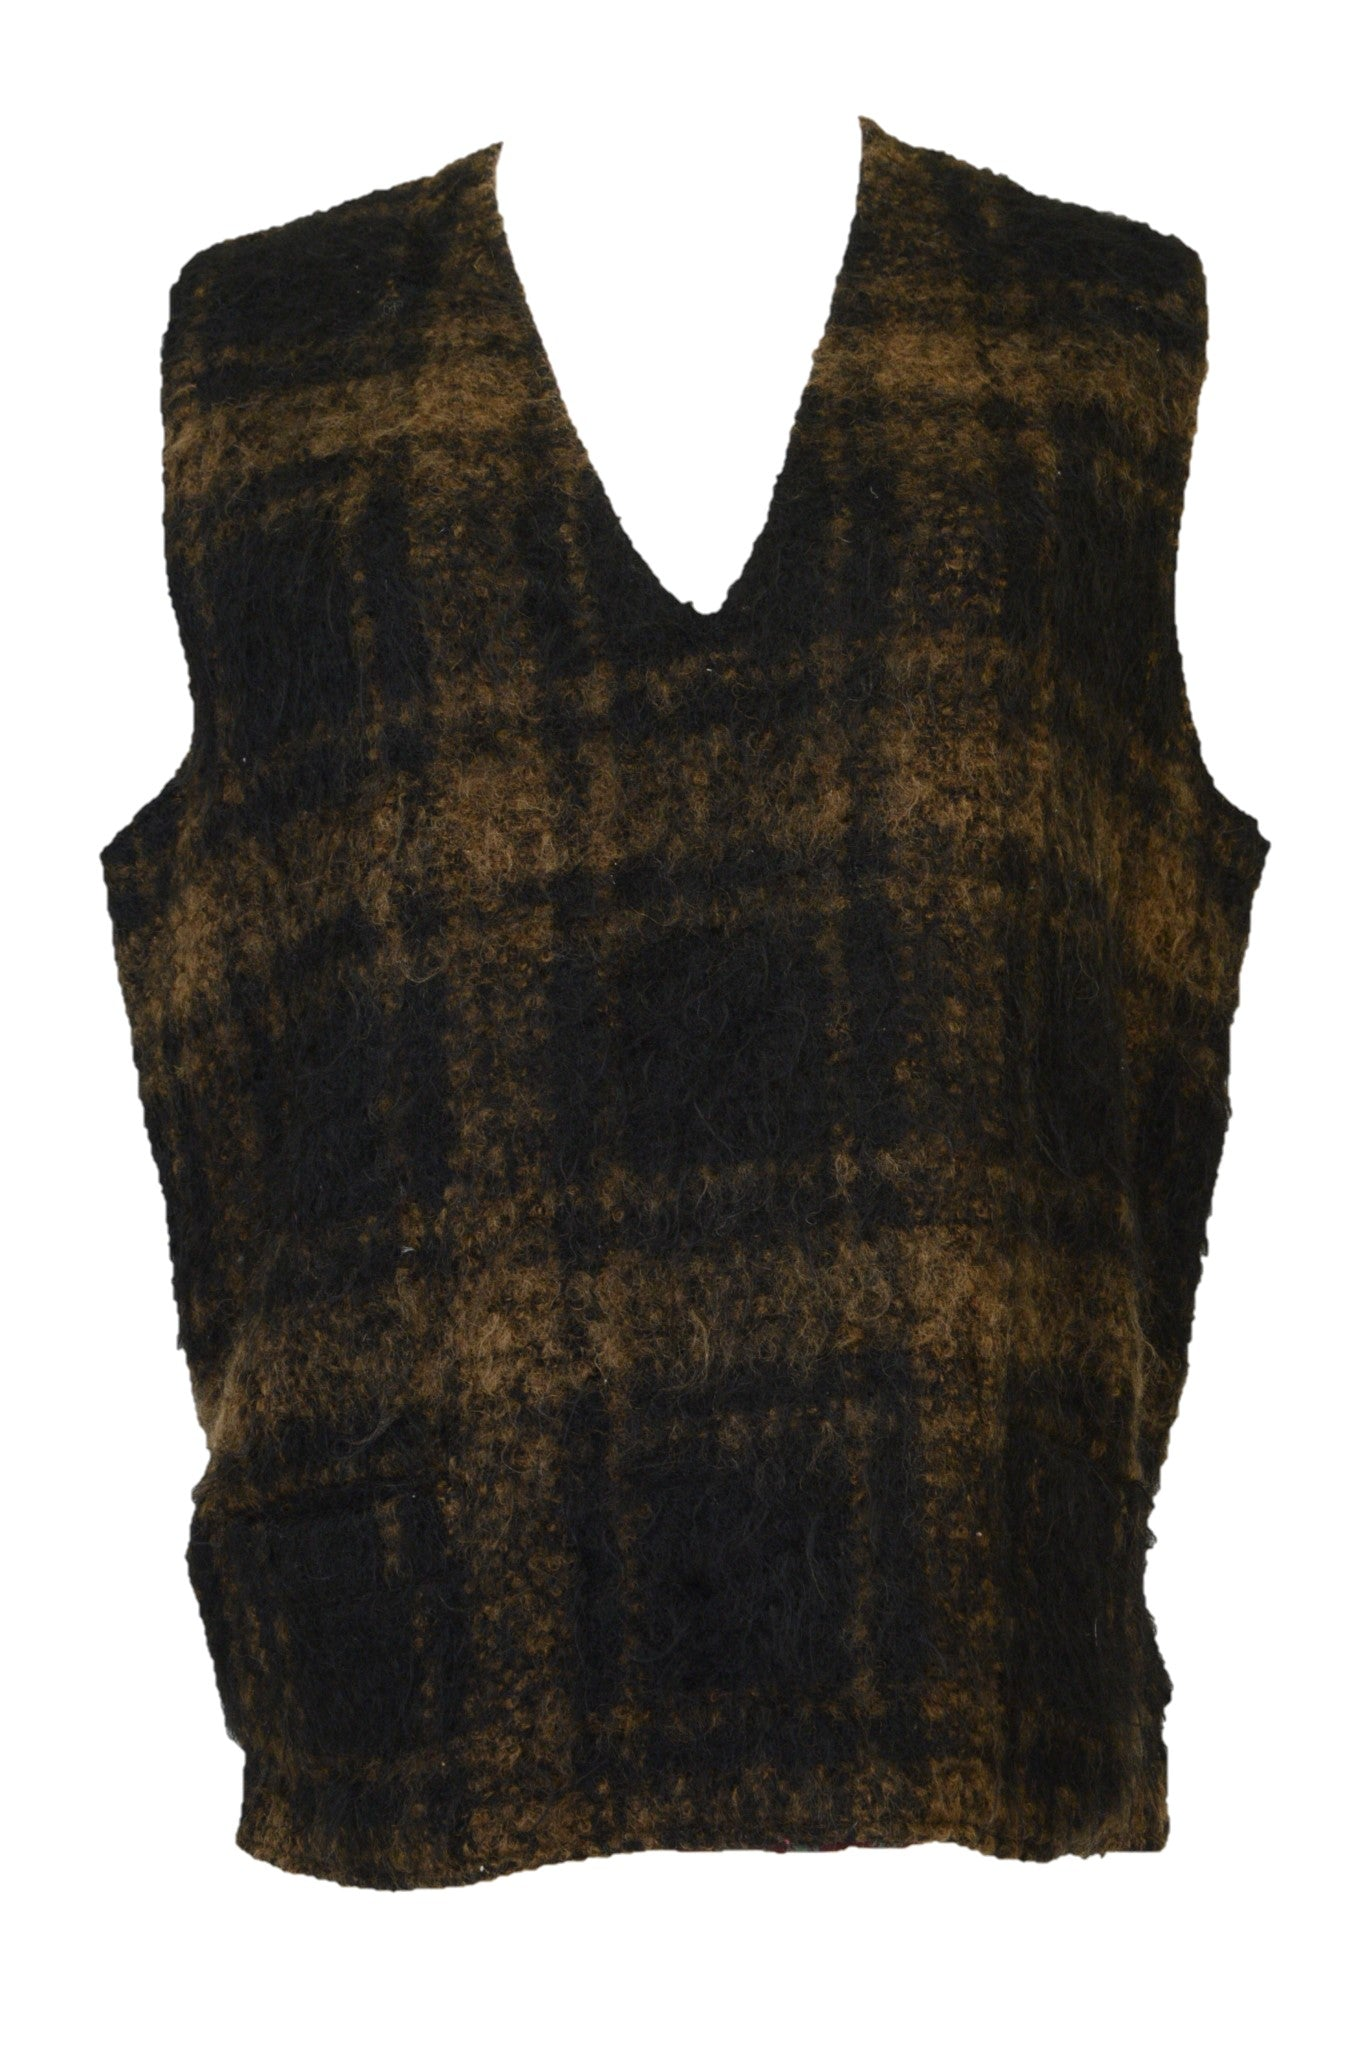 Vintage wool vest, mohair finish